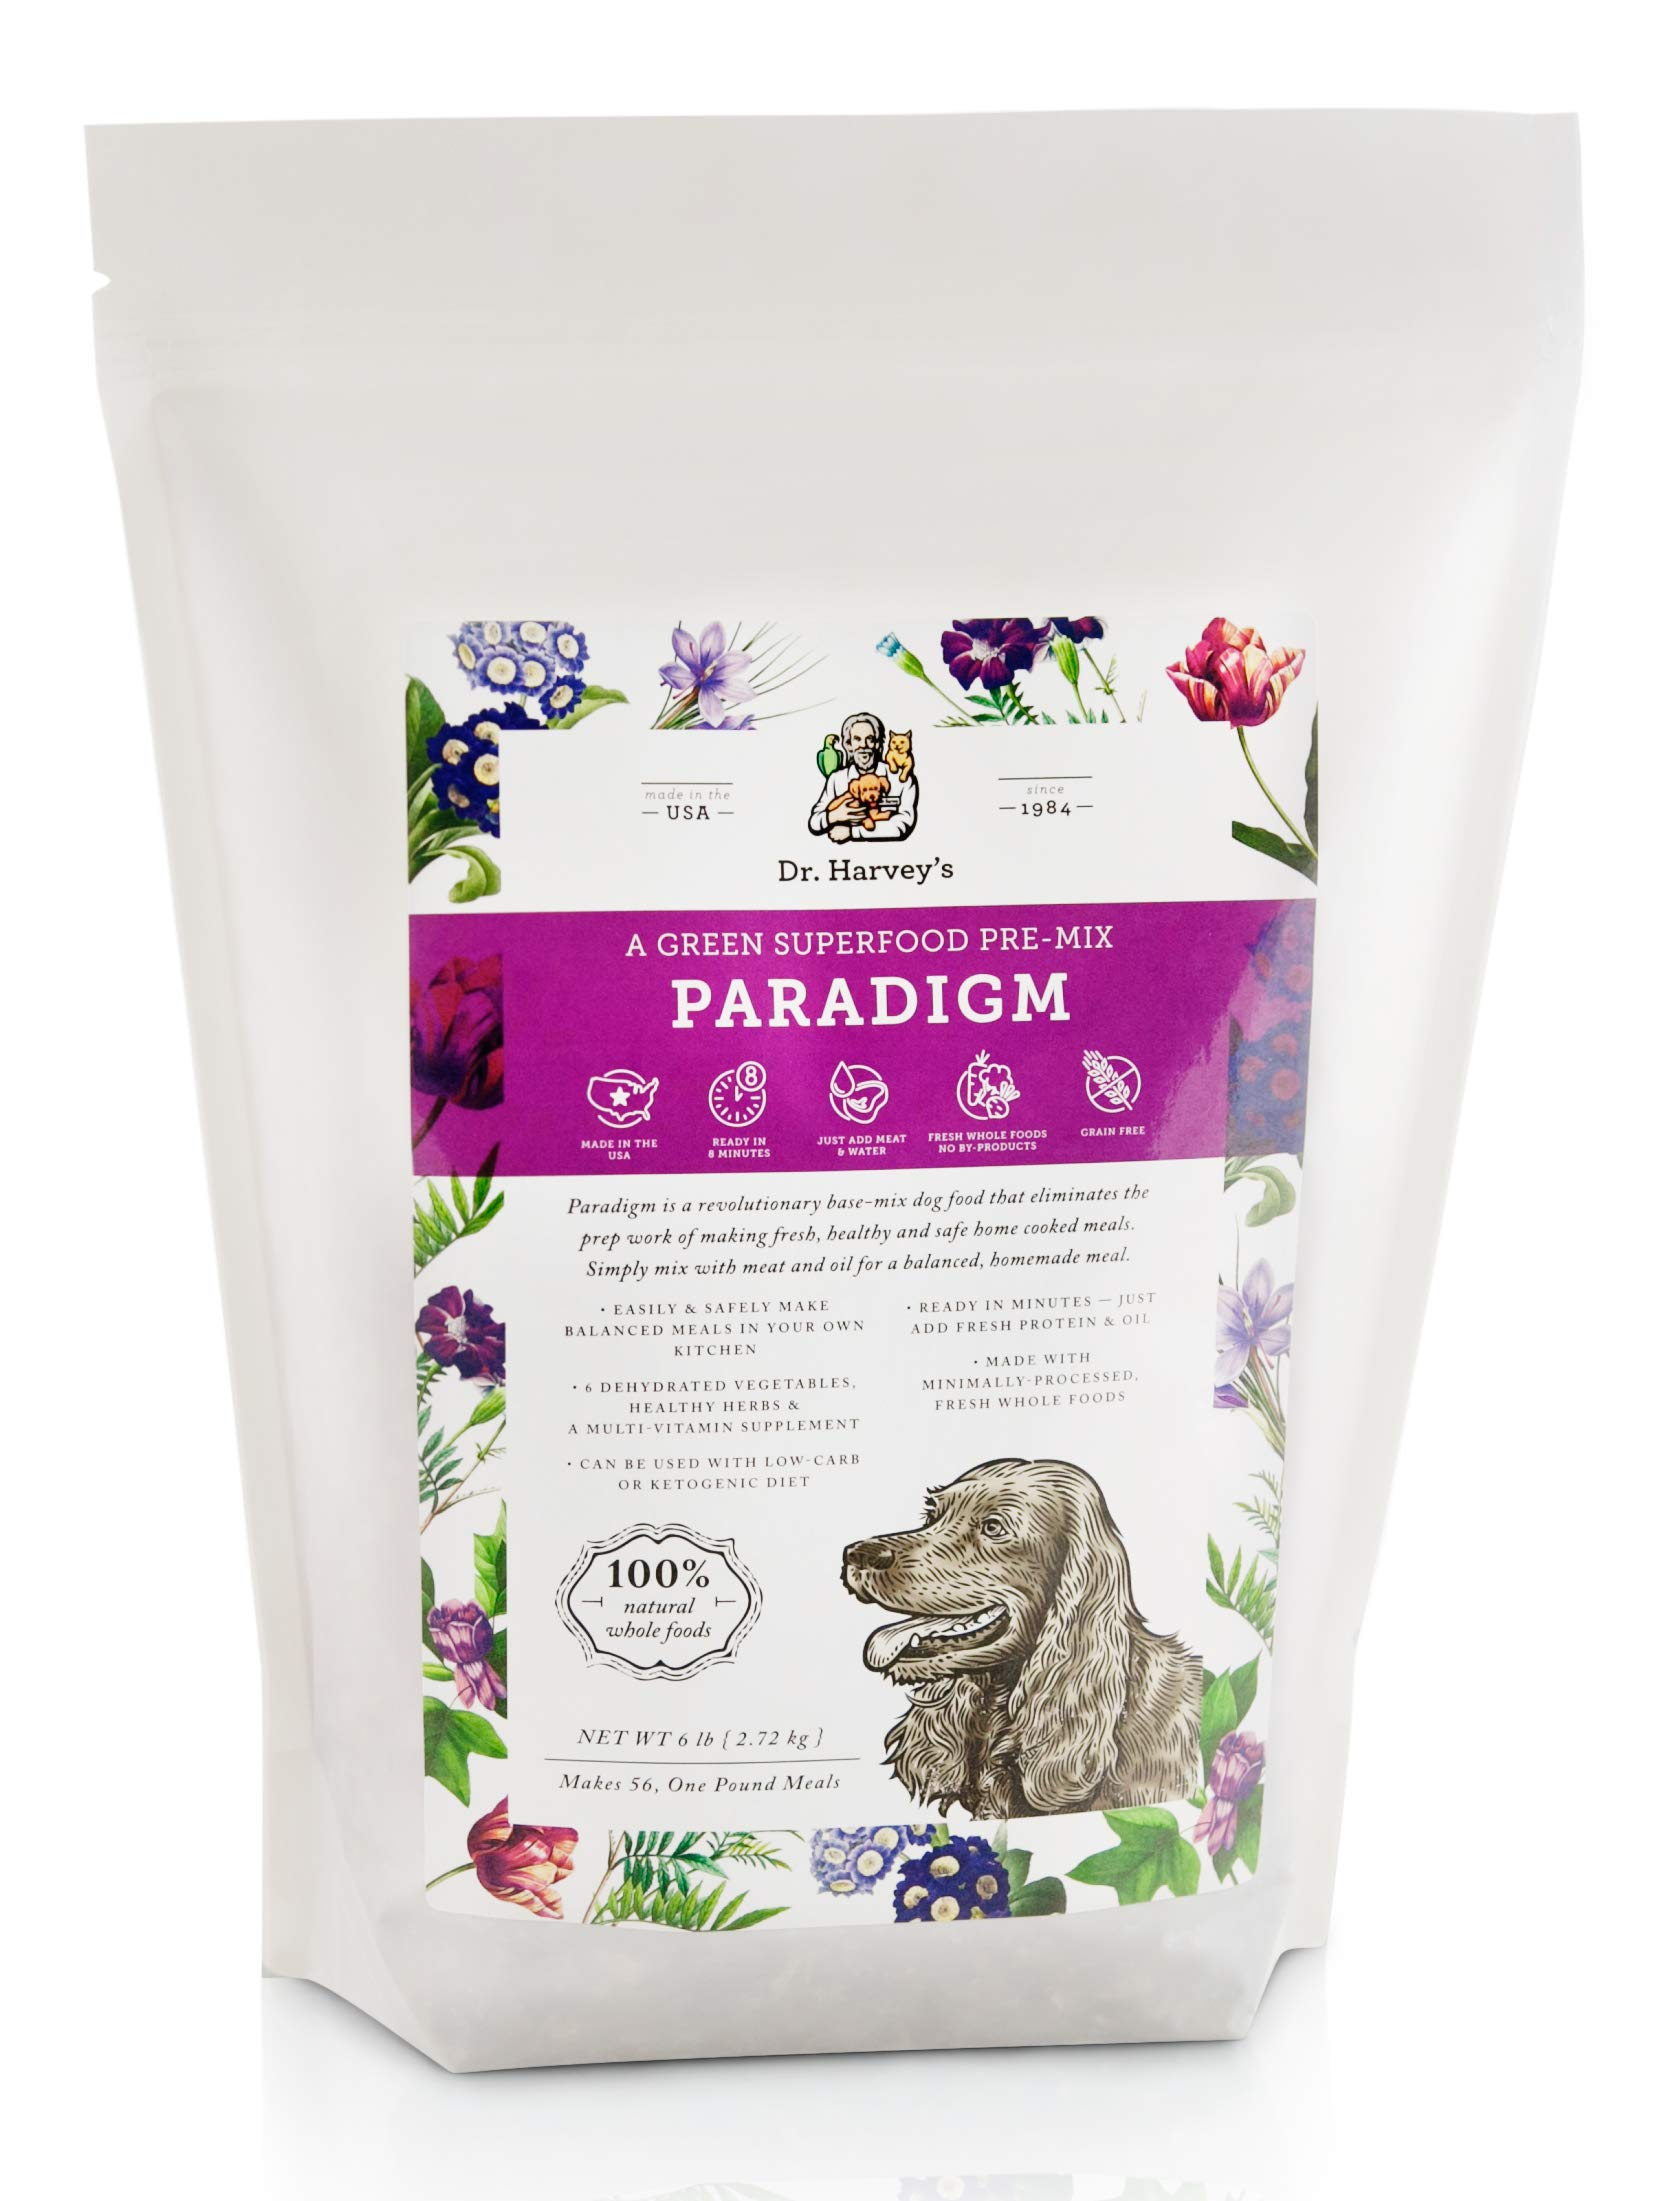 Dr. Harvey's Paradigm Green Superfood Dog Food, Human Grade Dehydrated Grain Free Base Mix for Dogs, Diabetic Low Carb Ketogenic Diet (6 Pounds) by Dr. Harvey's